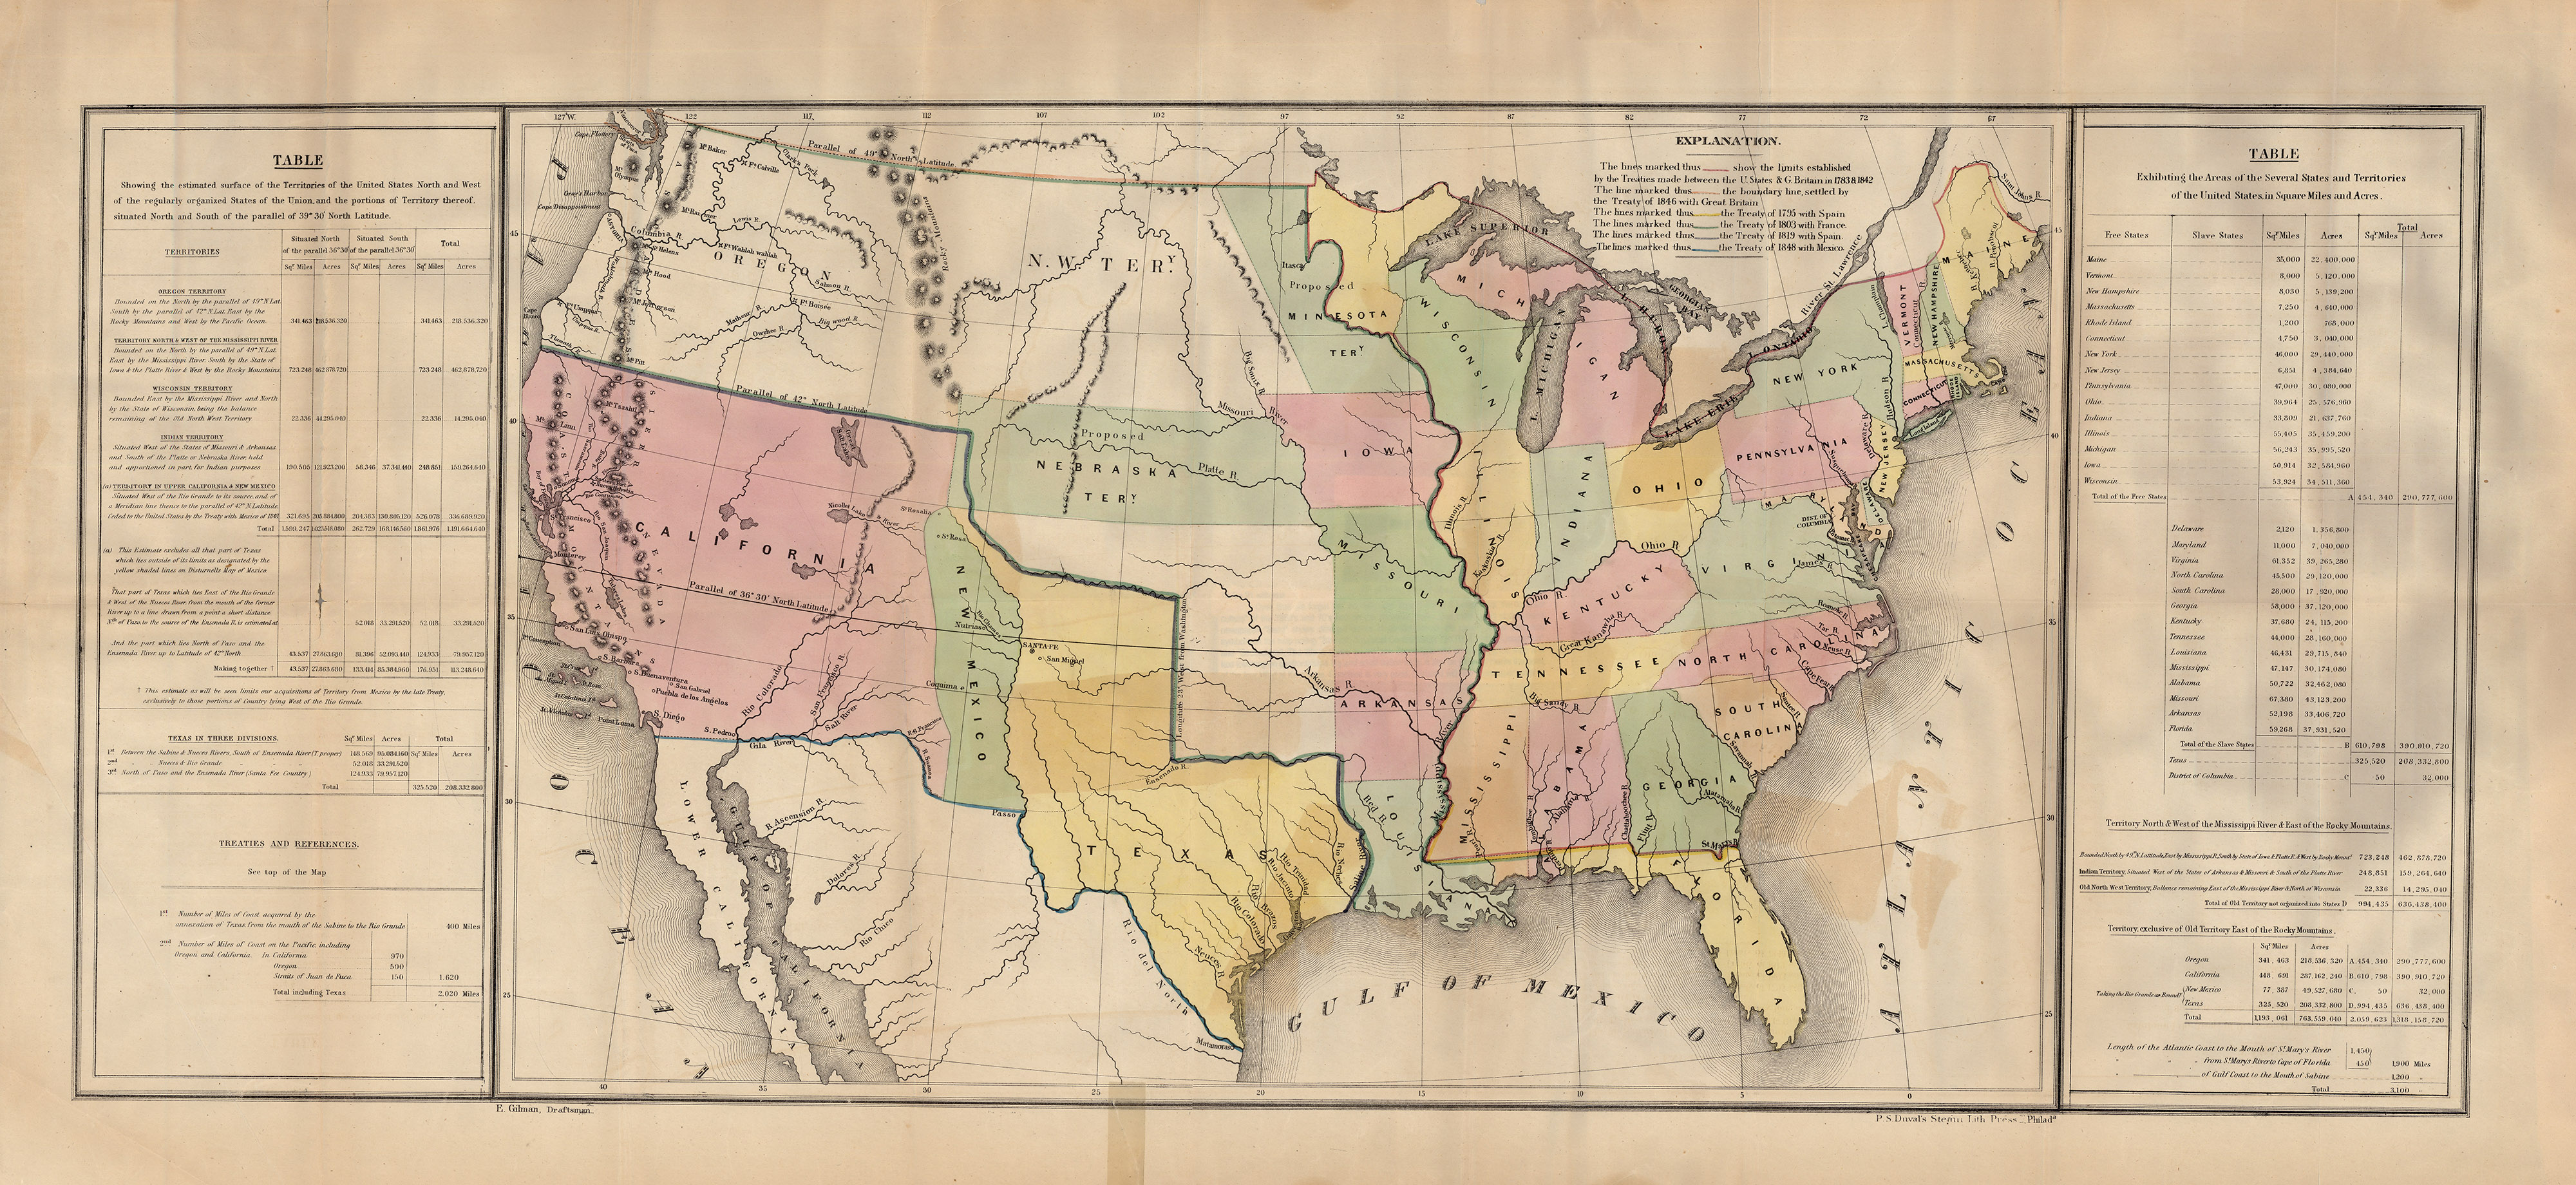 Mexico Map 1850.Lines Of Treaty Map Of The United States Between 1783 And 1848